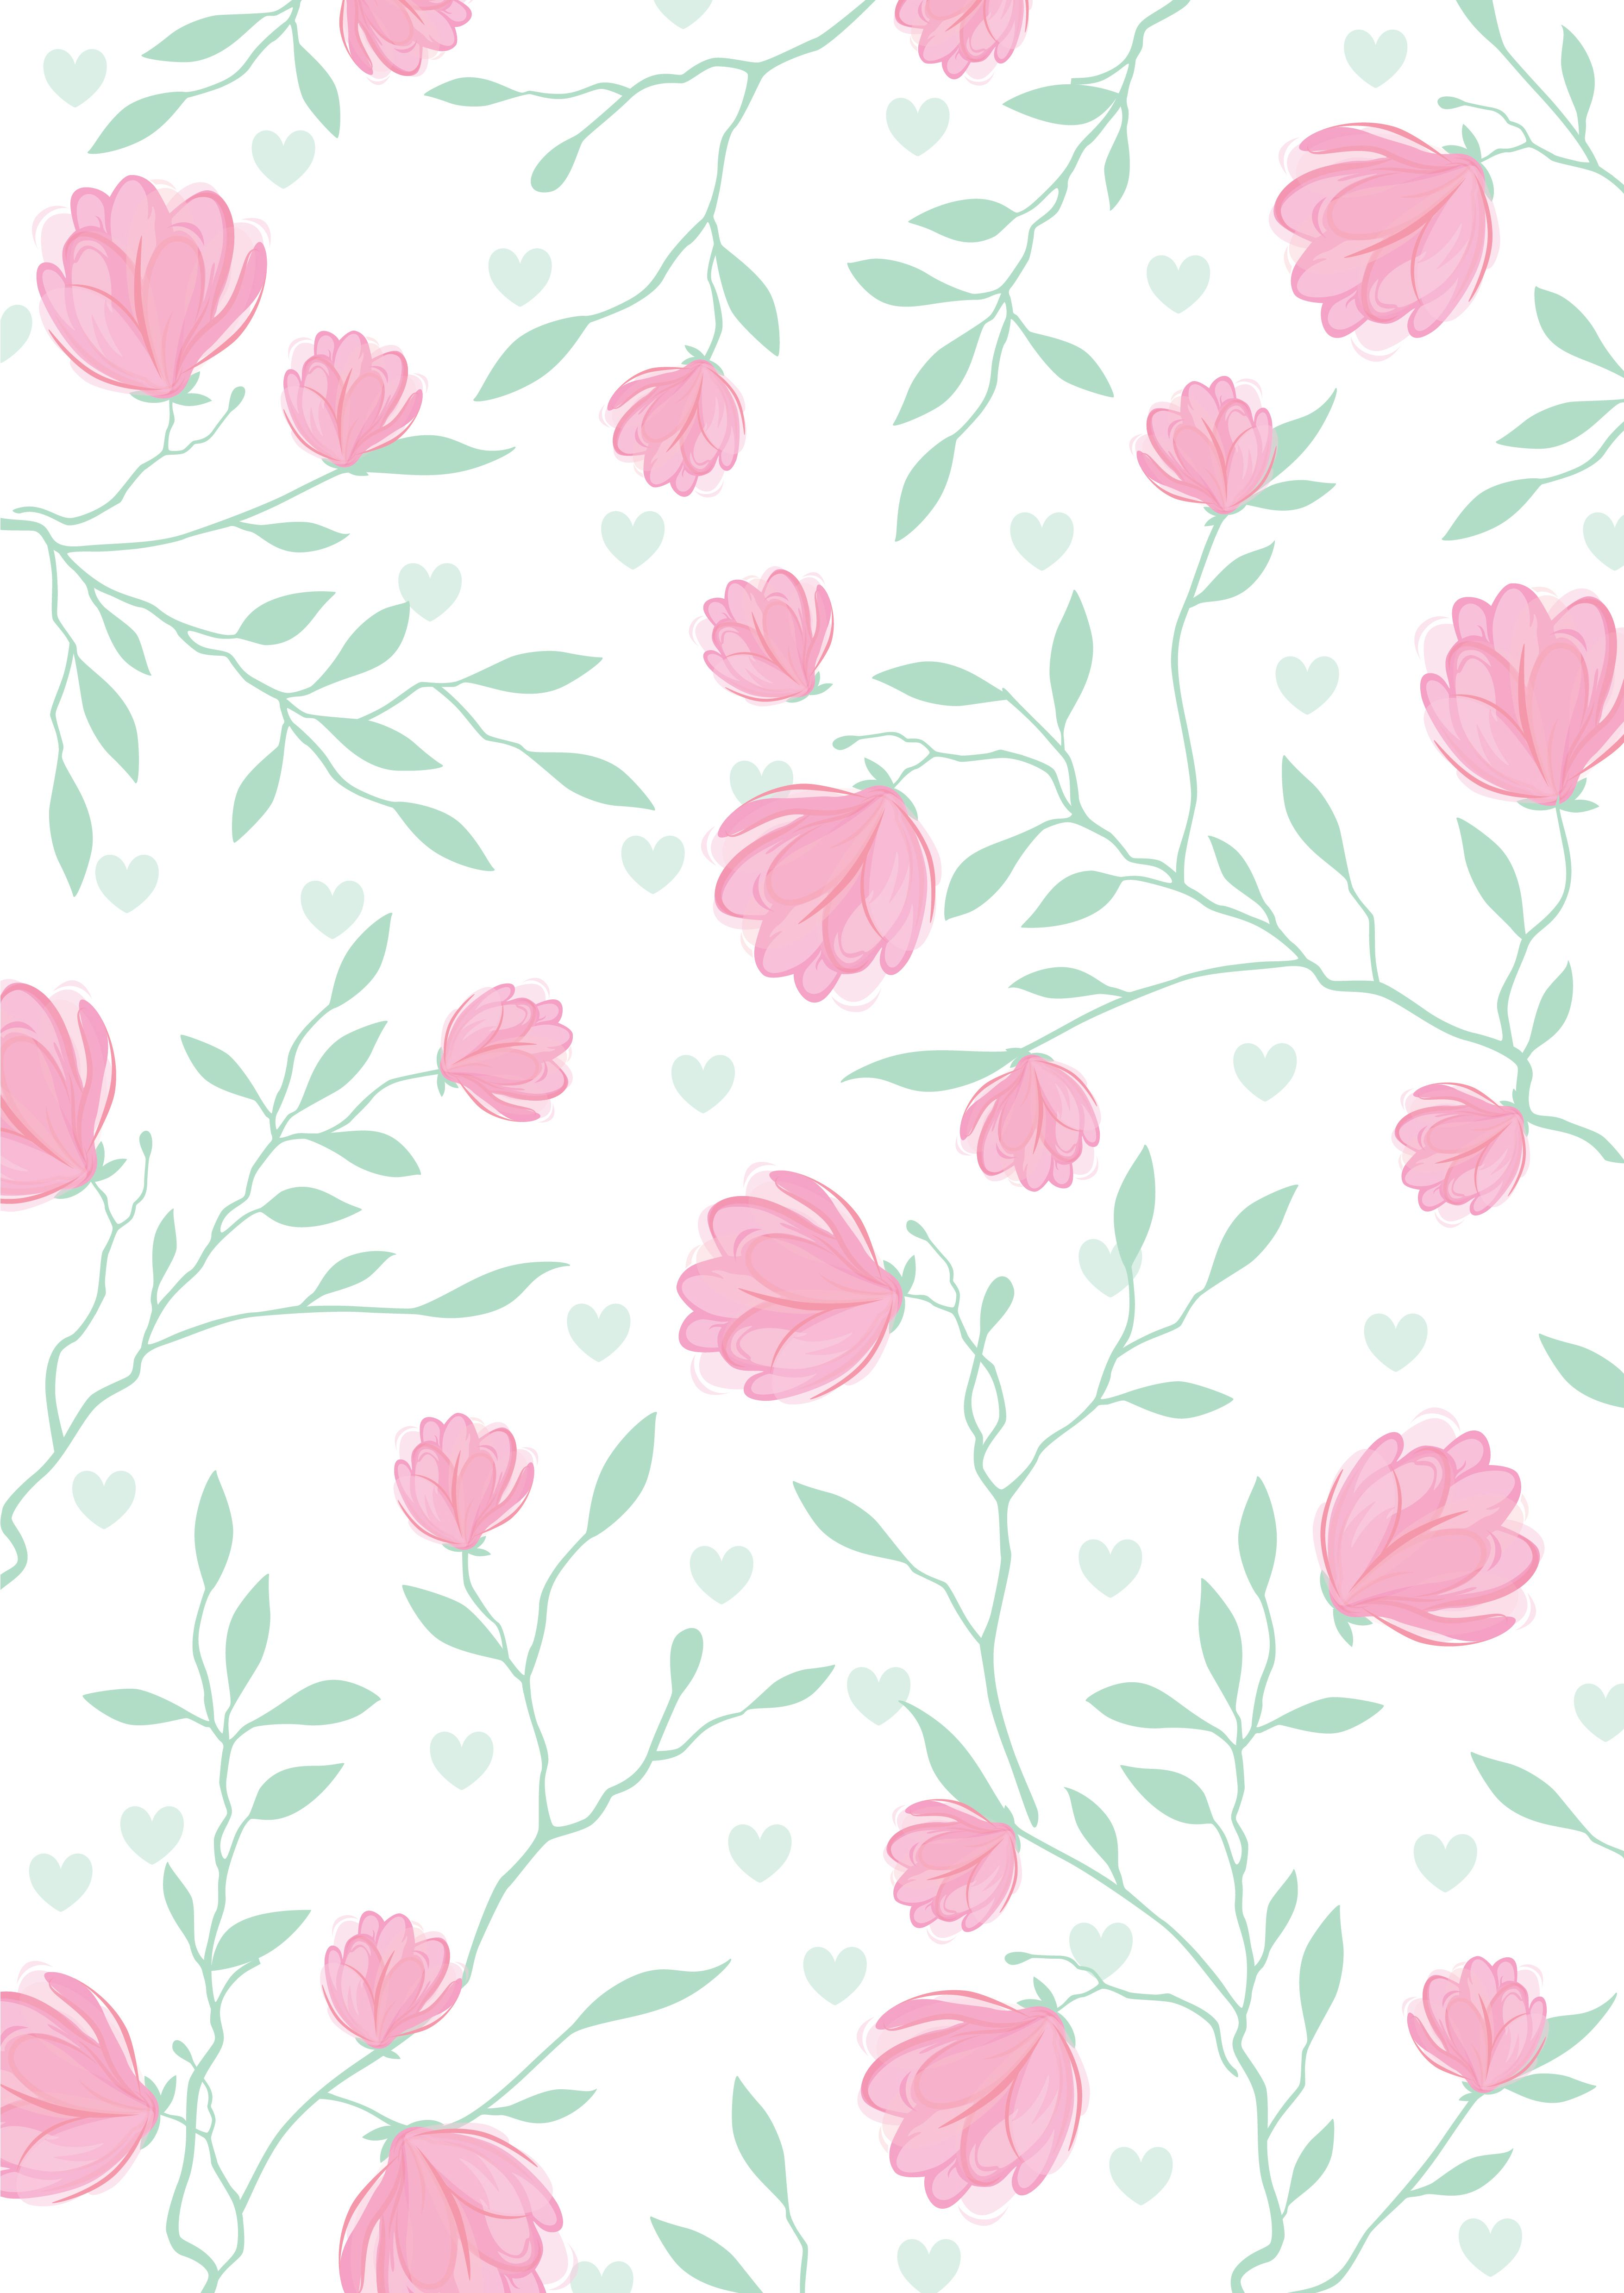 Floral pattern art/printable card/gift texture #nature #printable ...